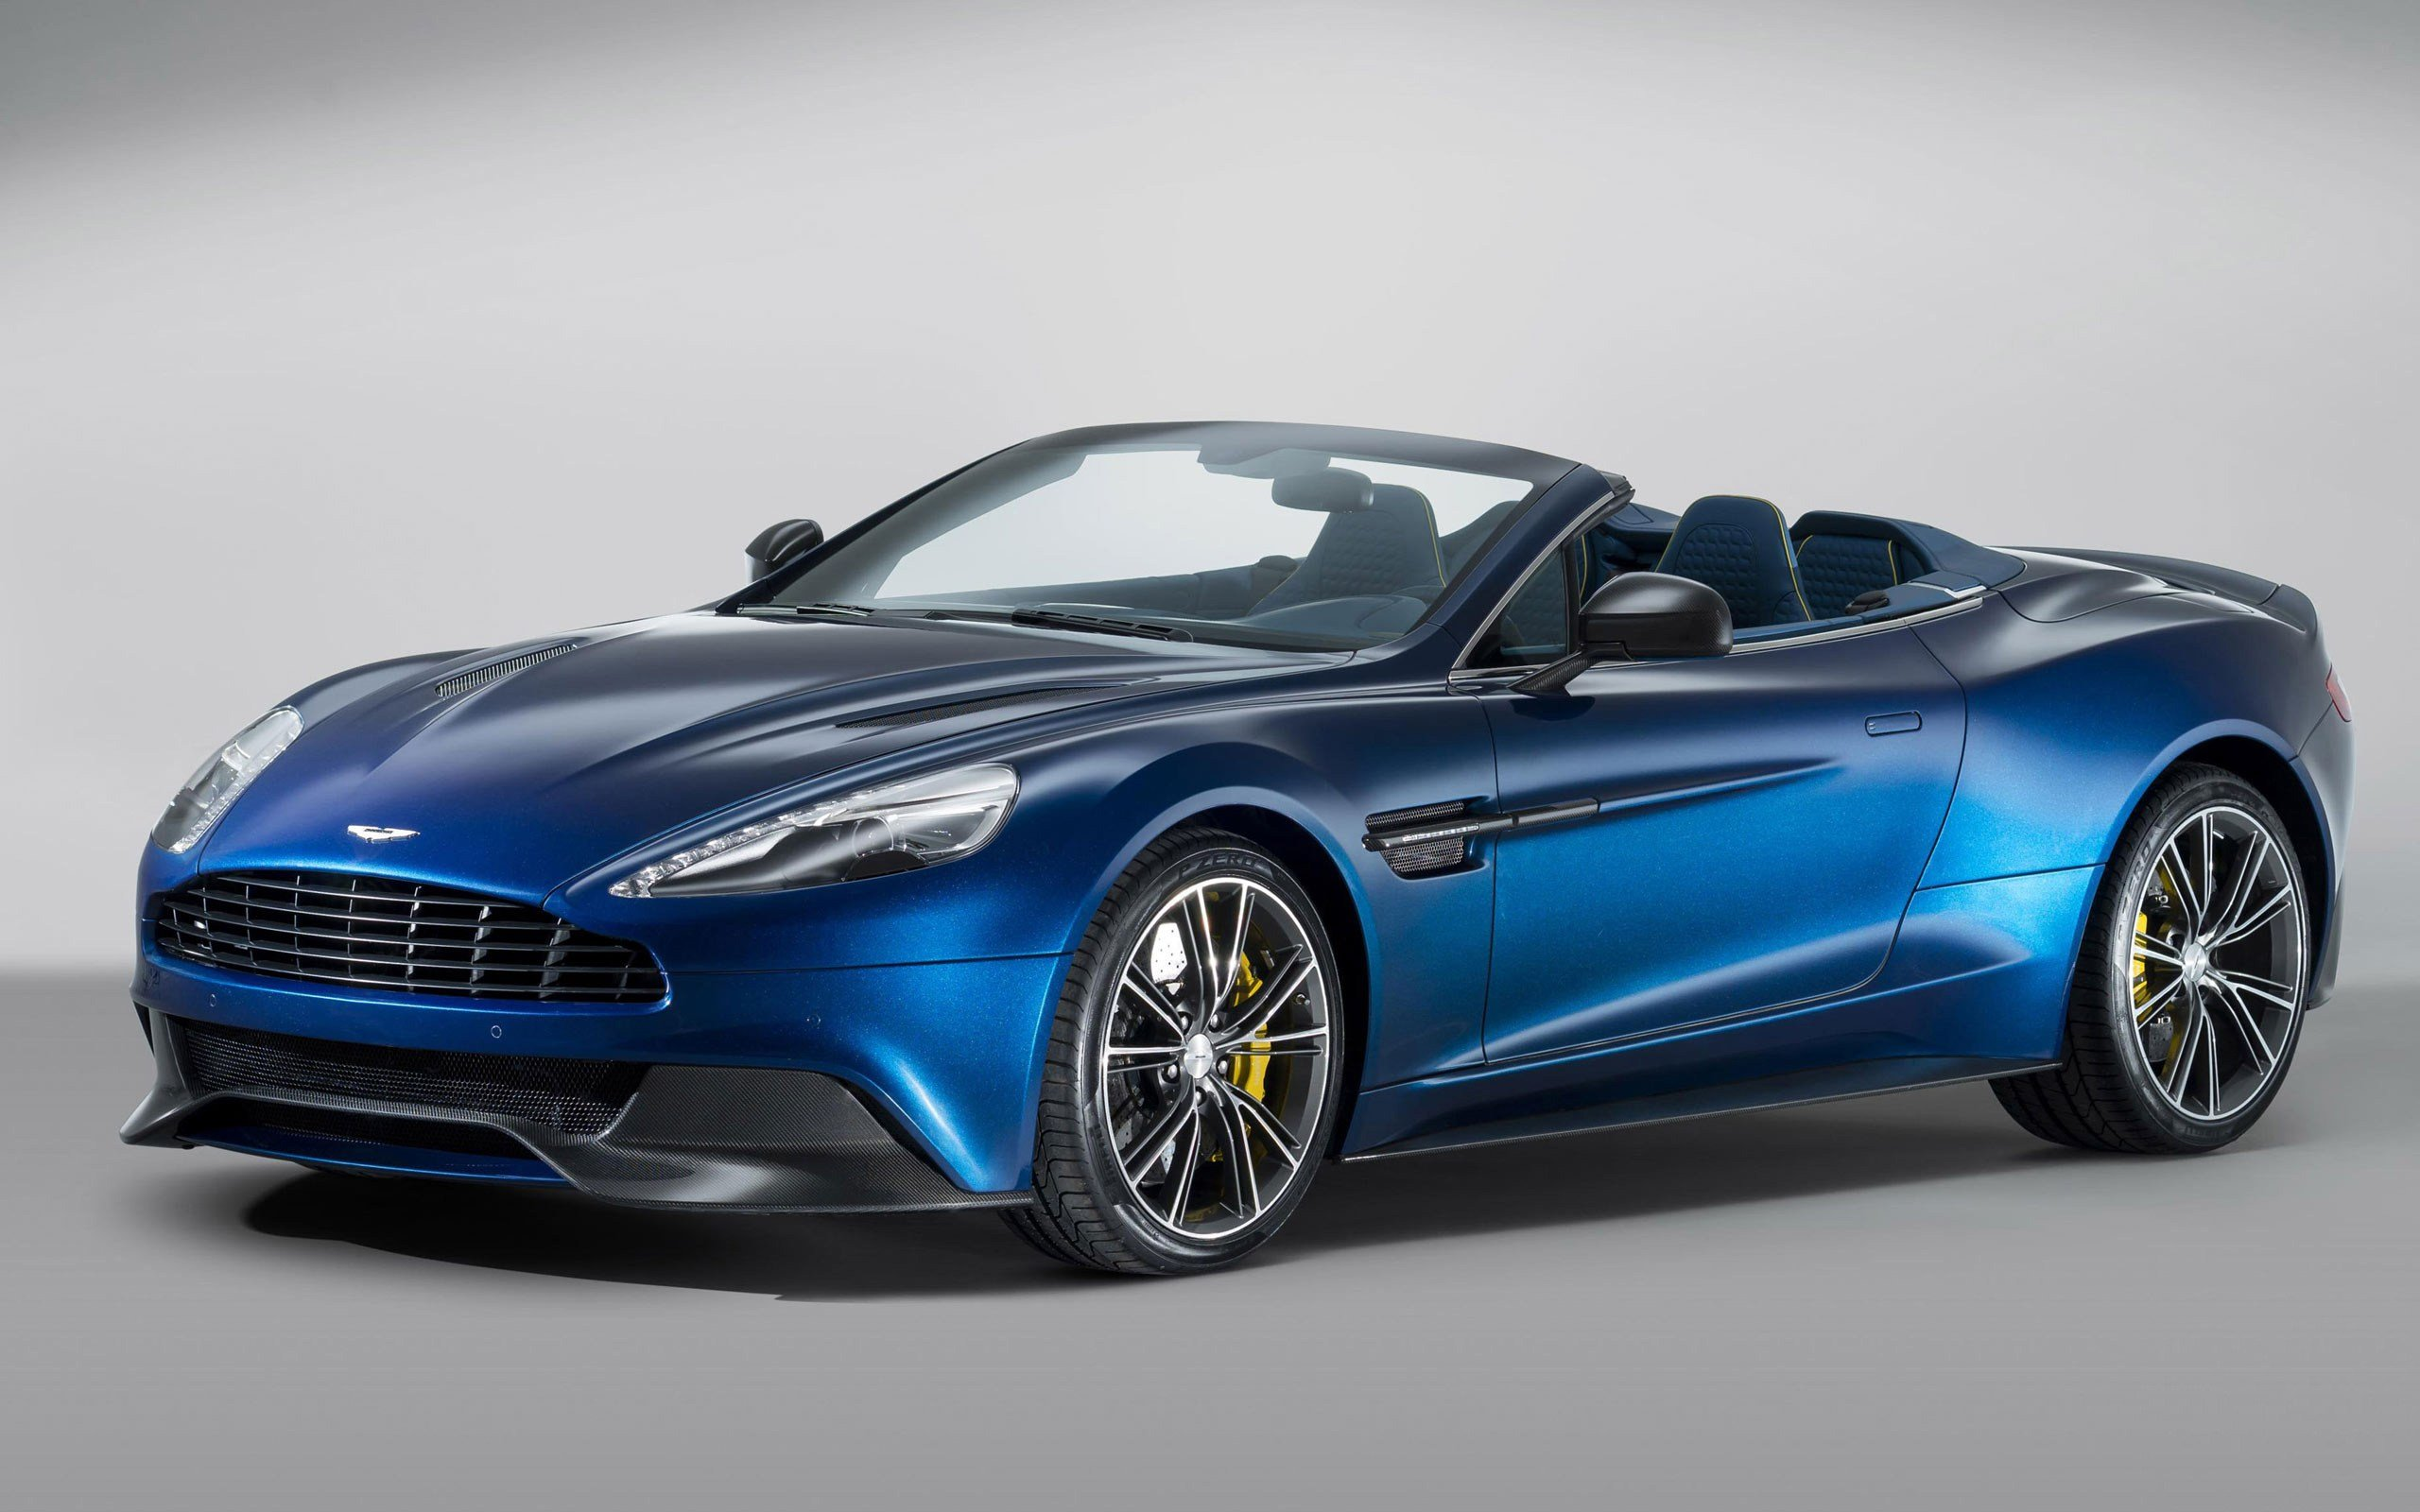 Latest 2014 Aston Martin Vanquish Wallpaper Hd Car Wallpapers Free Download